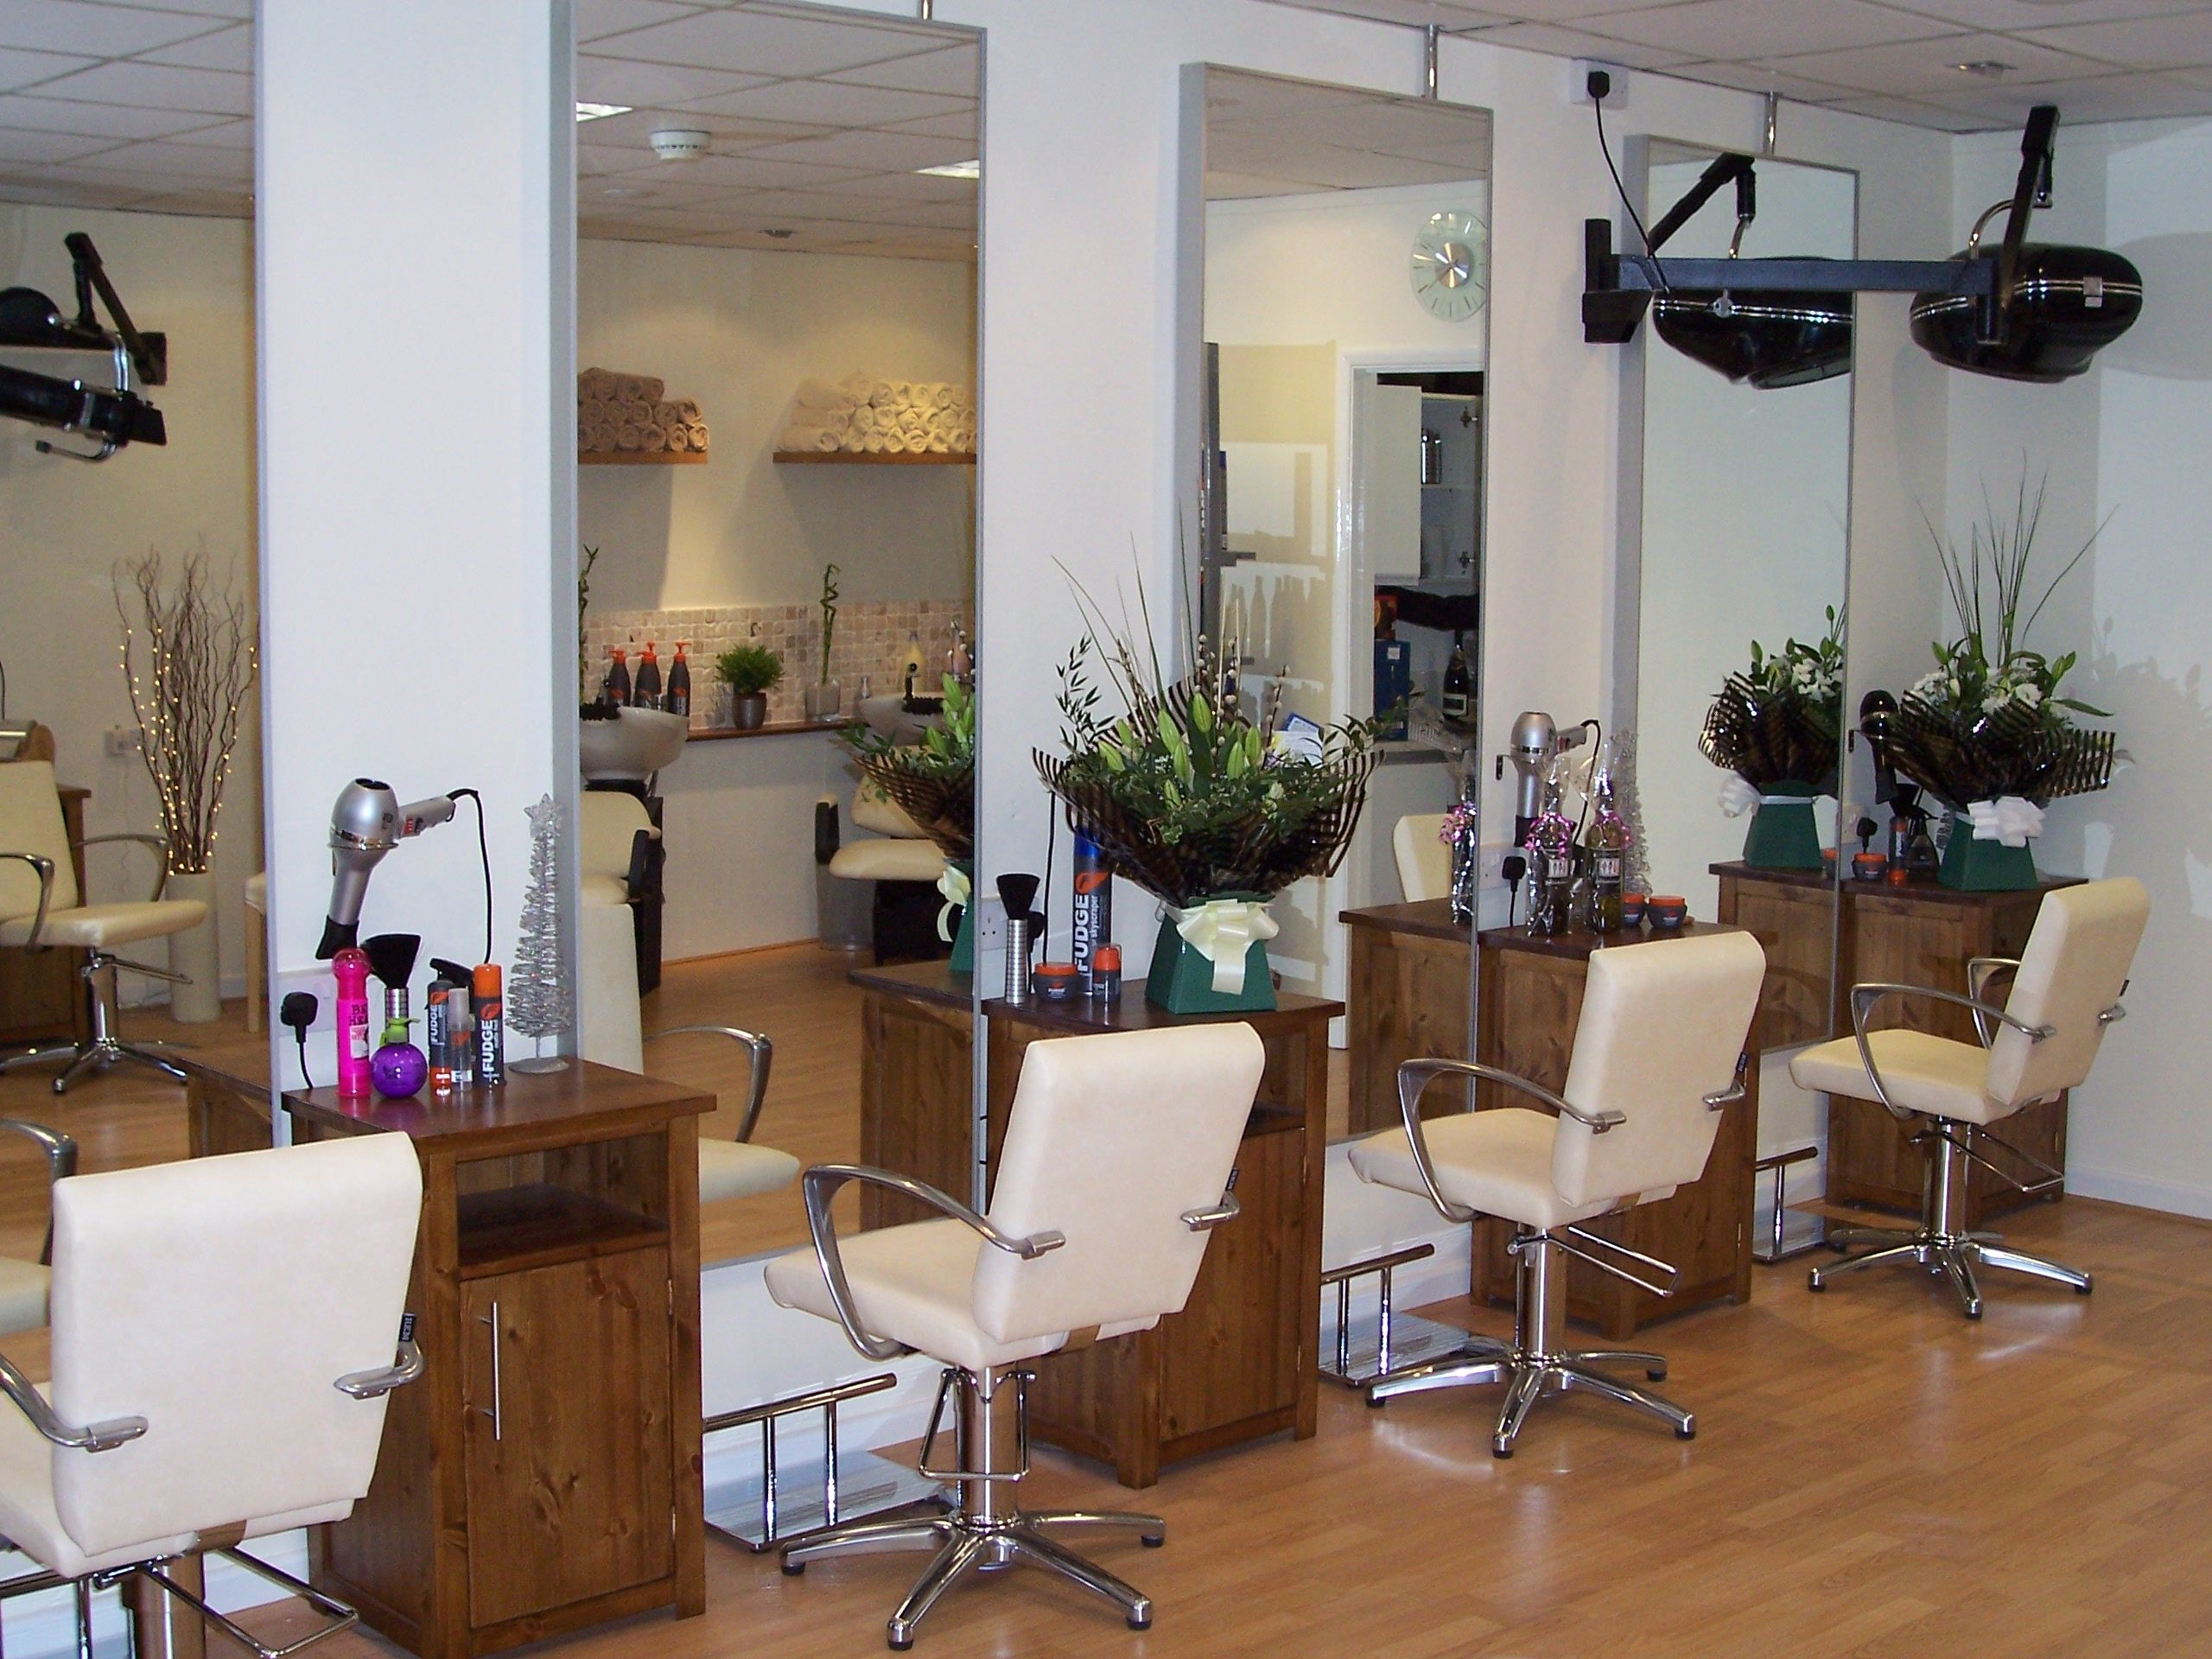 Beauty Salon Design Ideas barber shop design layout modern salon interior design beauty salon shop designs hair salon designs hair Small Salon Design Unique Hair Design Enter Your Caption Here Salon Design Ideas Beauty